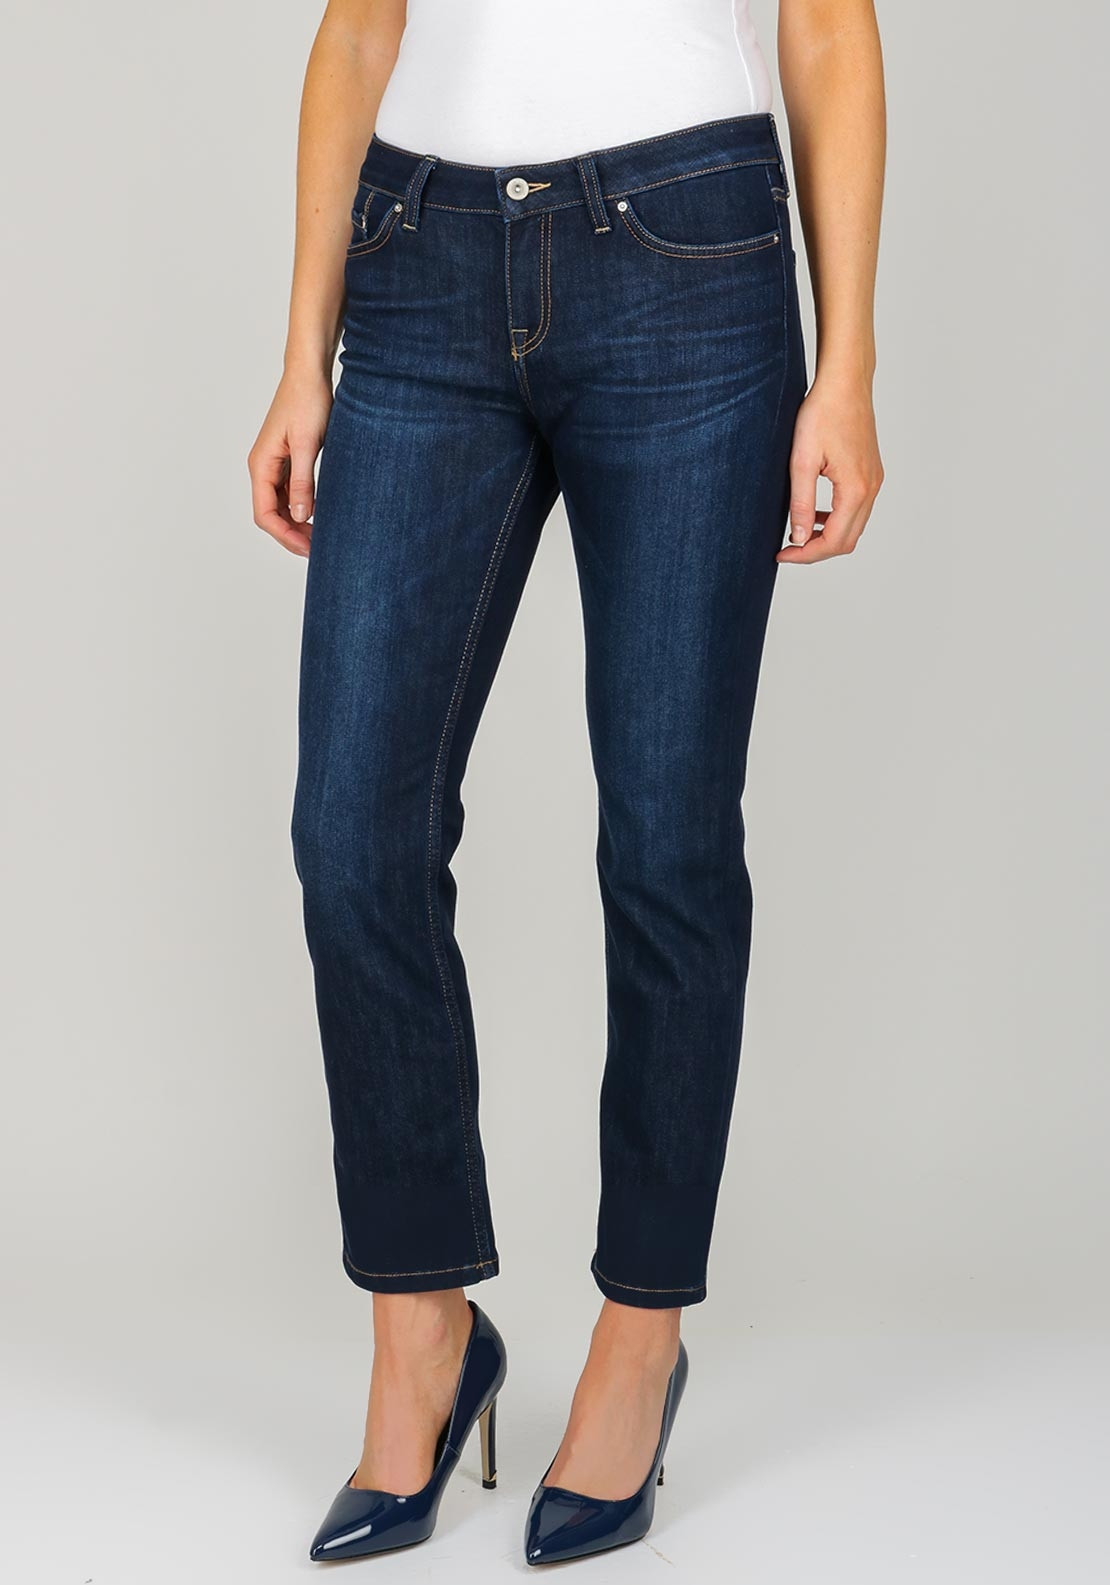 62b2f988 Tommy Hilfiger Womens Rome Straight Leg Jeans, Navy. Be the first to review  this product